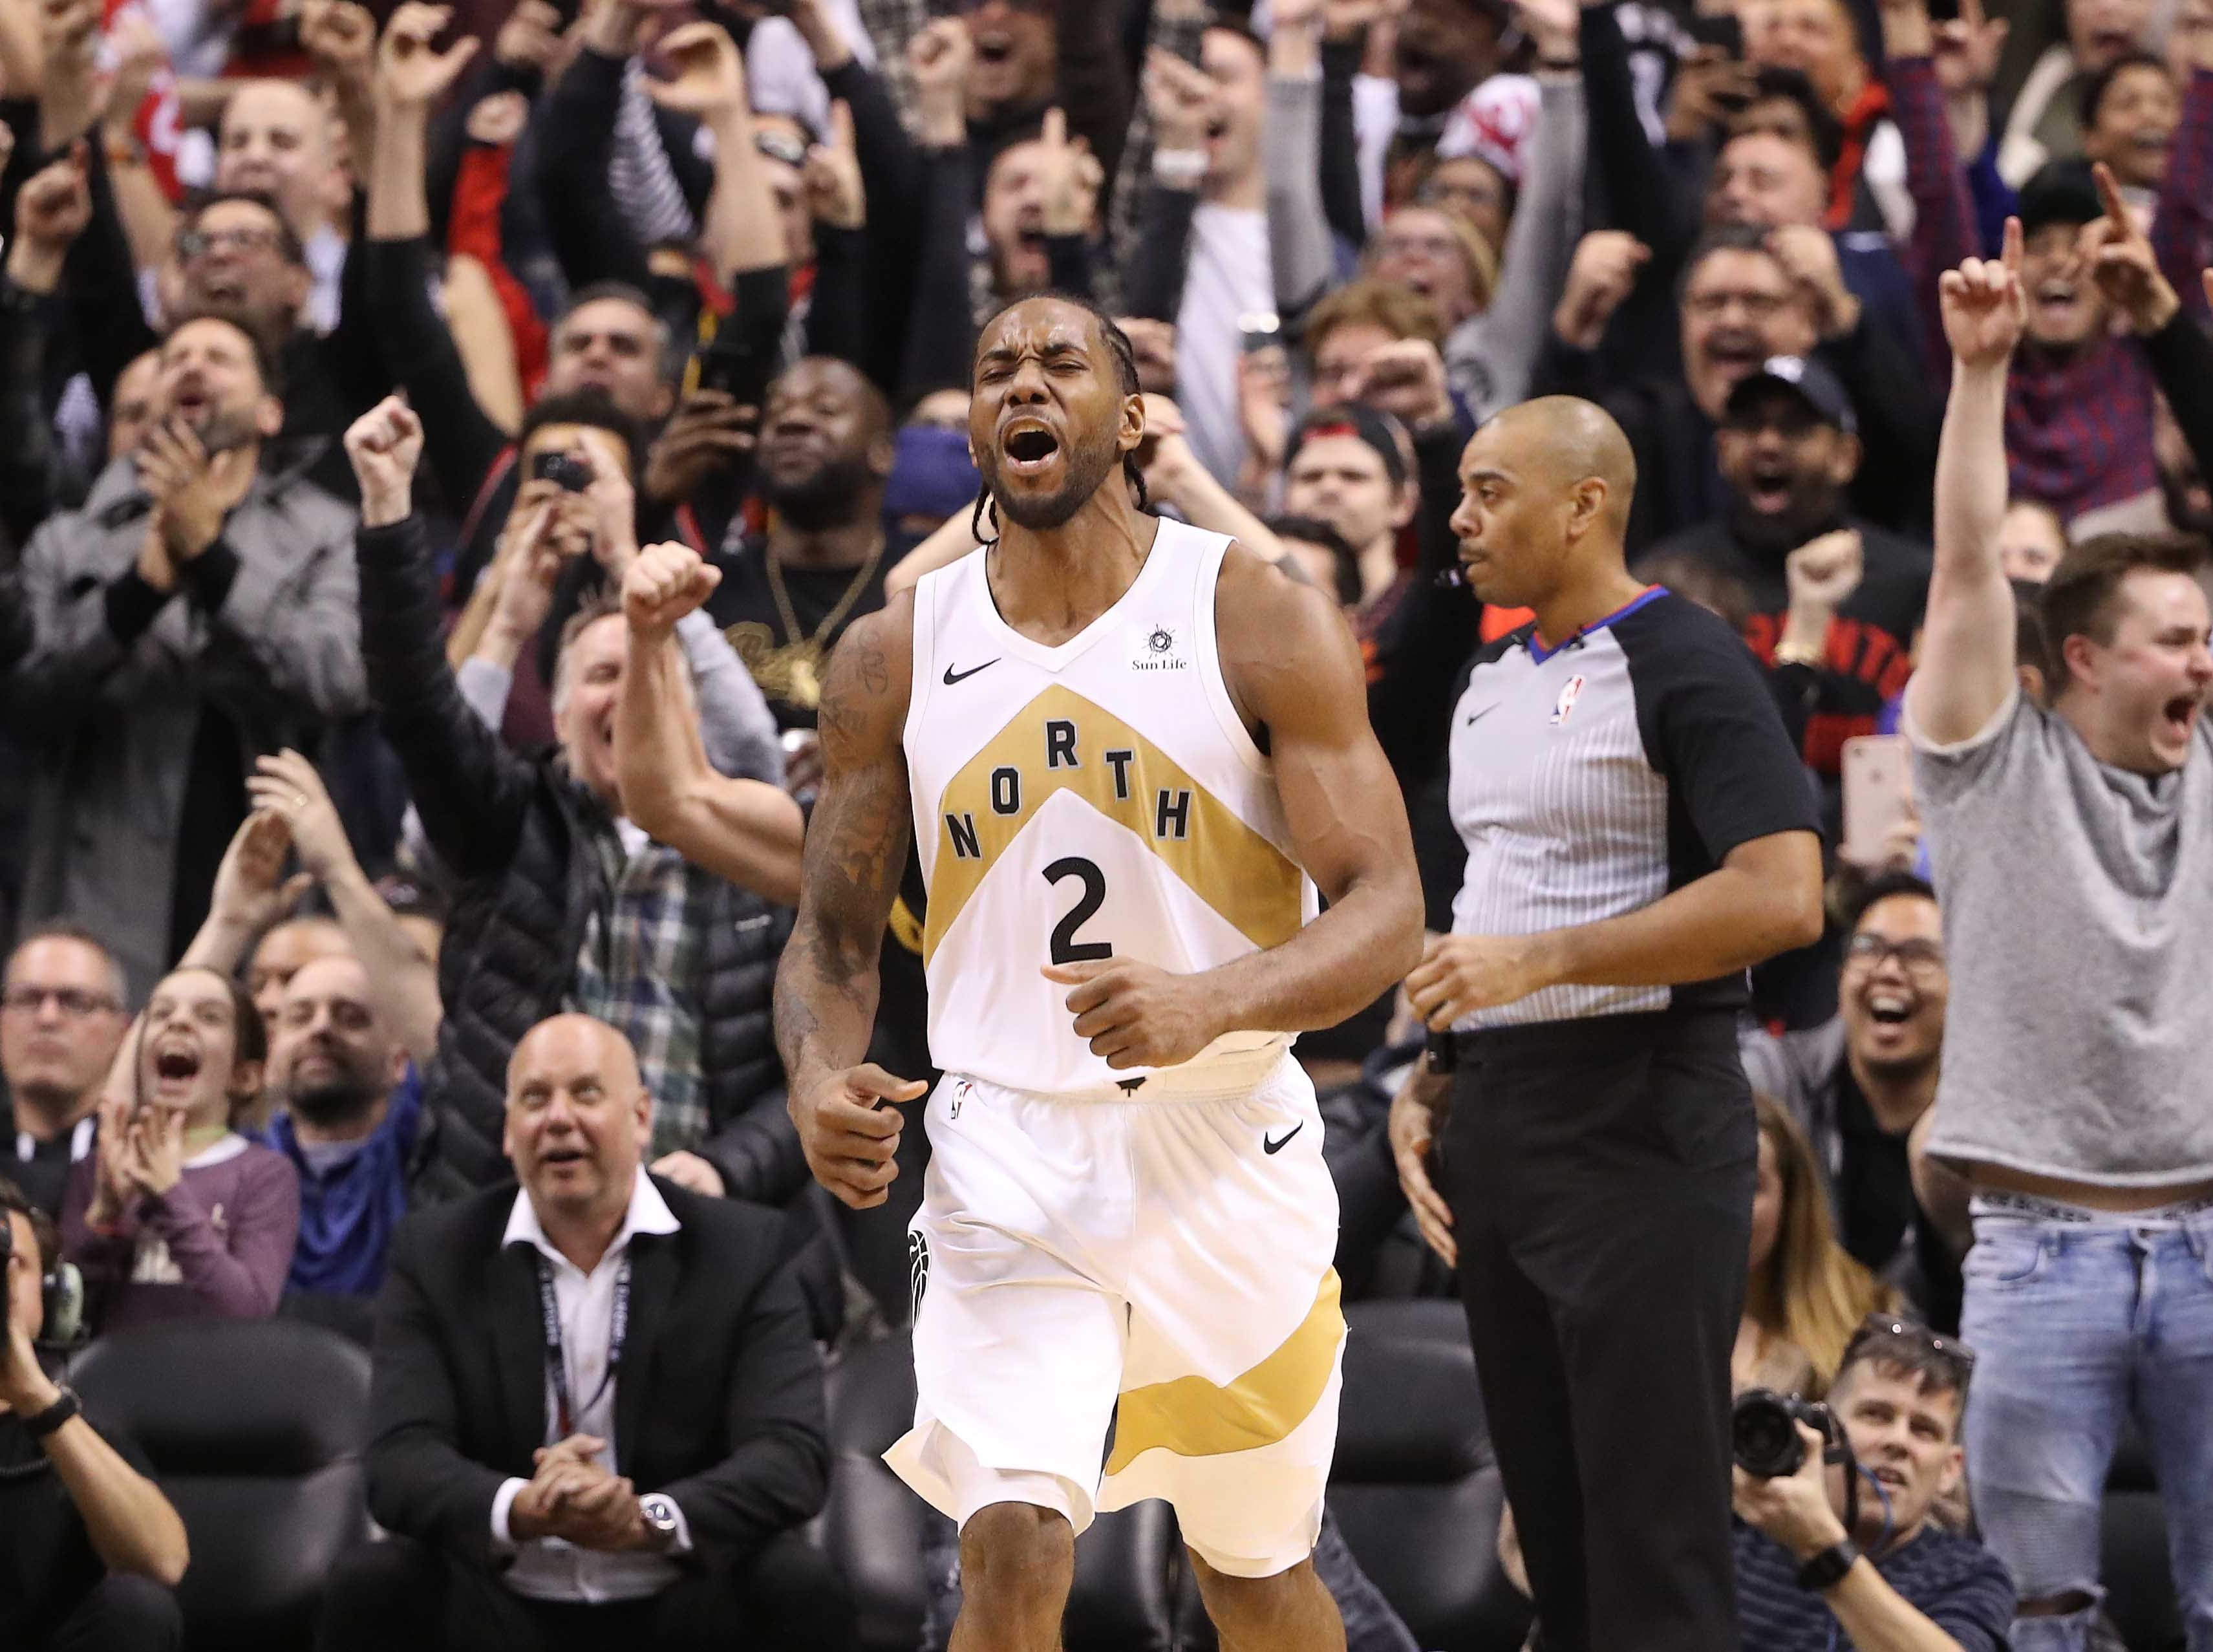 March 1: Raptors forward Kawhi Leonard celebrates after hitting the game-winning bucket in the closing second to beat the Trail Blazers at Scotiabank Arena.